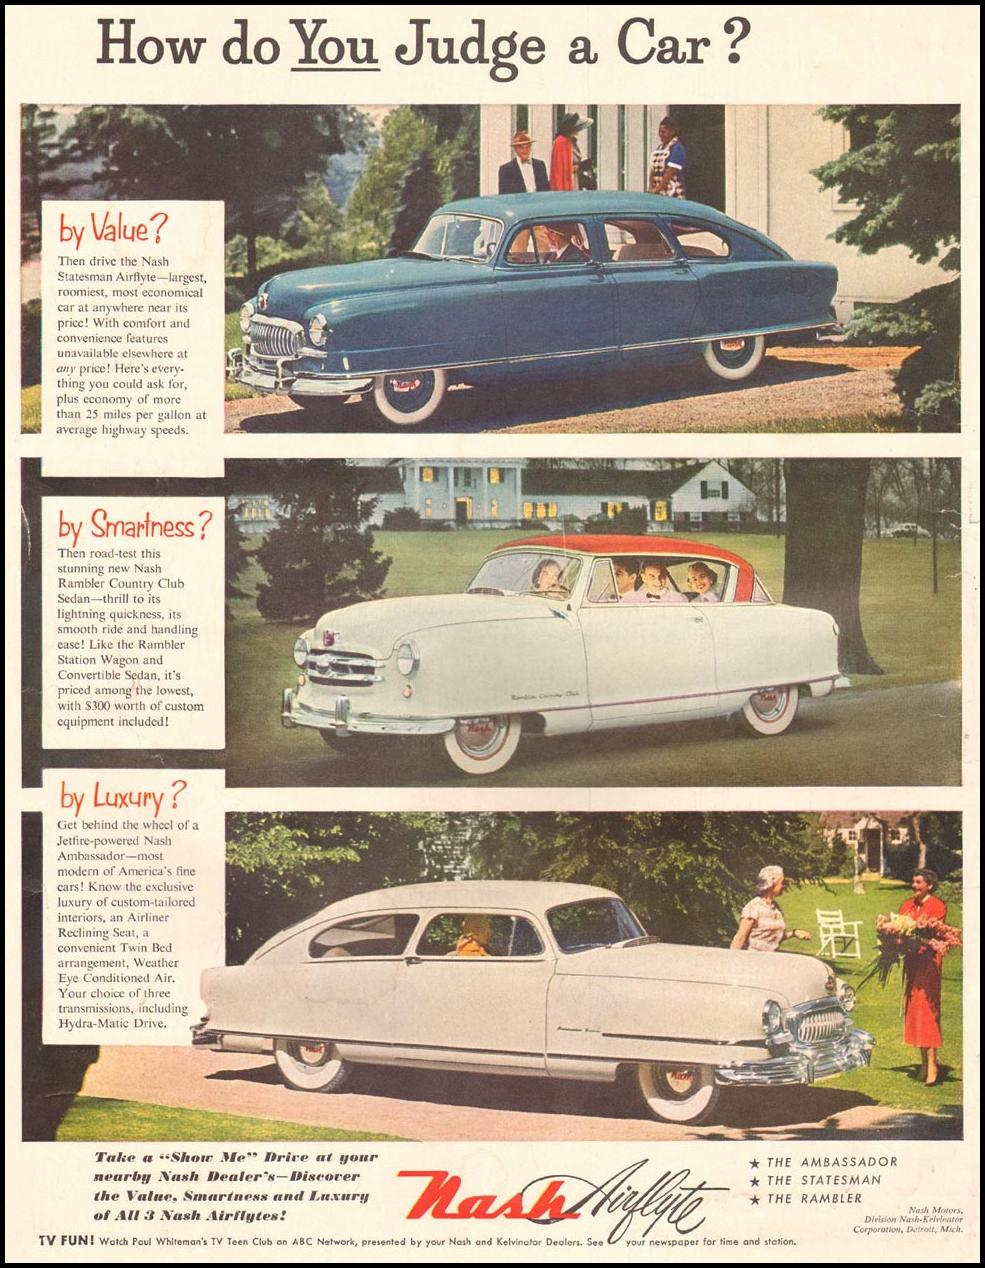 NASH AUTOMOBILES LIFE 10/01/1951 INSIDE FRONT